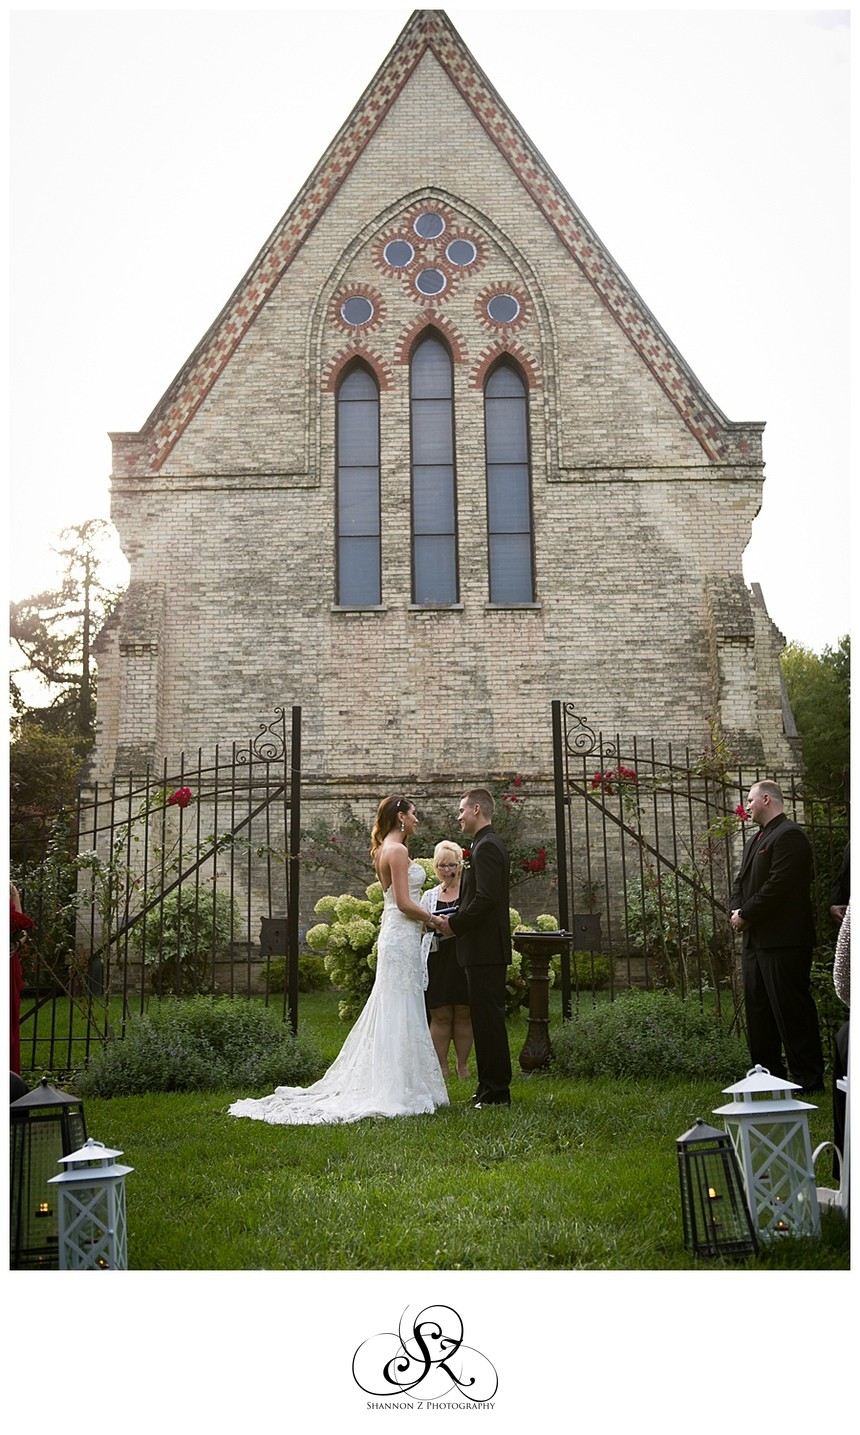 DeKoven Ceremony: Outdoors in the Garden